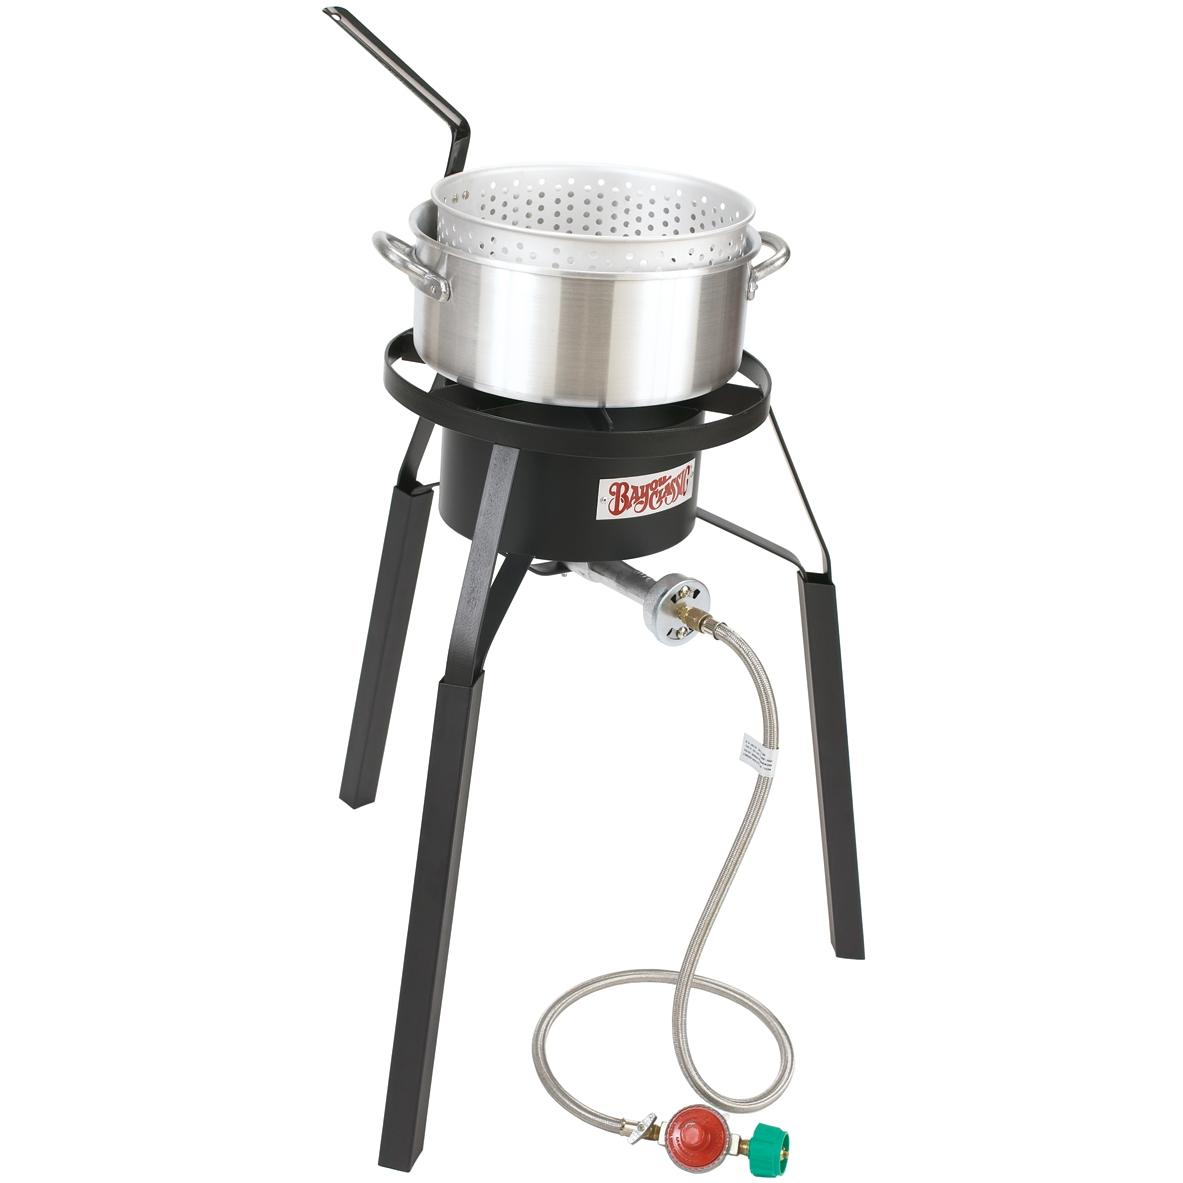 Bayou Classic Burners With Extension Legs Sportsmans Choice Deluxe Fish Cooker Pot & High Pressure Gas Burner